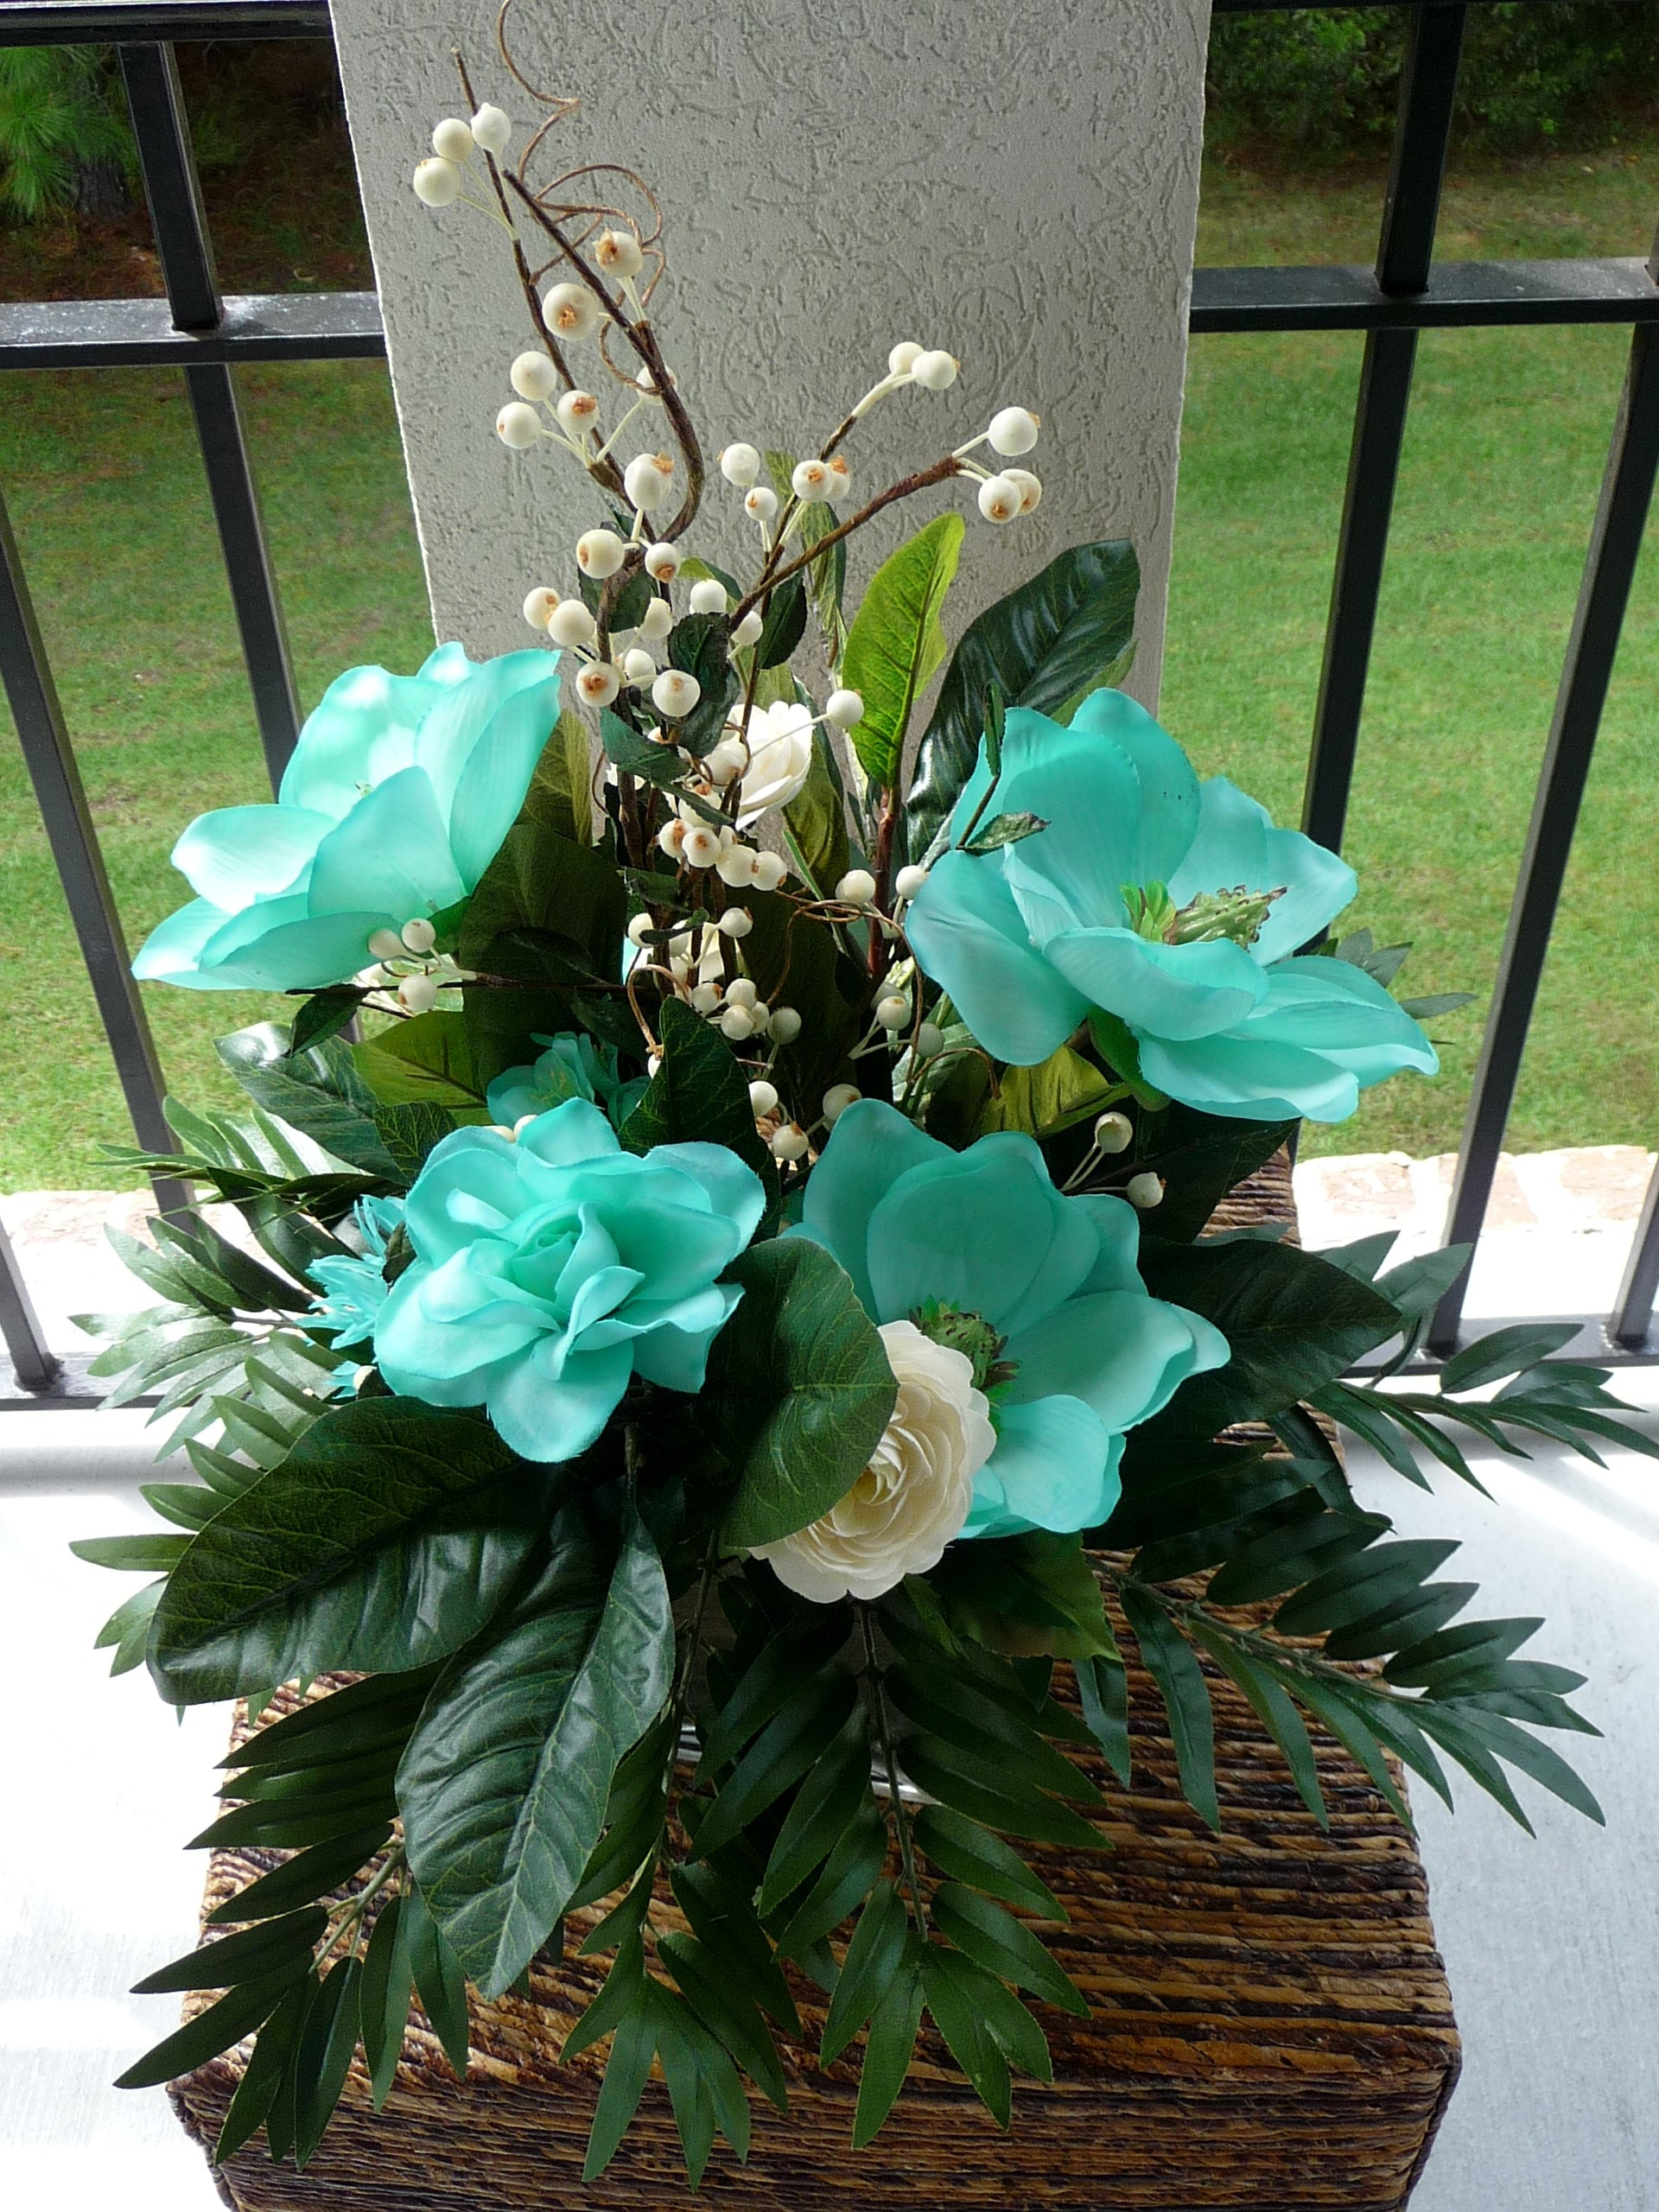 Ceremony, Inspiration, Reception, Flowers & Decor, white, ivory, blue, Ceremony Flowers, Centerpieces, Flowers, Roses, Centerpiece, Wedding, Teal, Board, Ranunculus, Handpainted, Savannah event decor, Magnolias